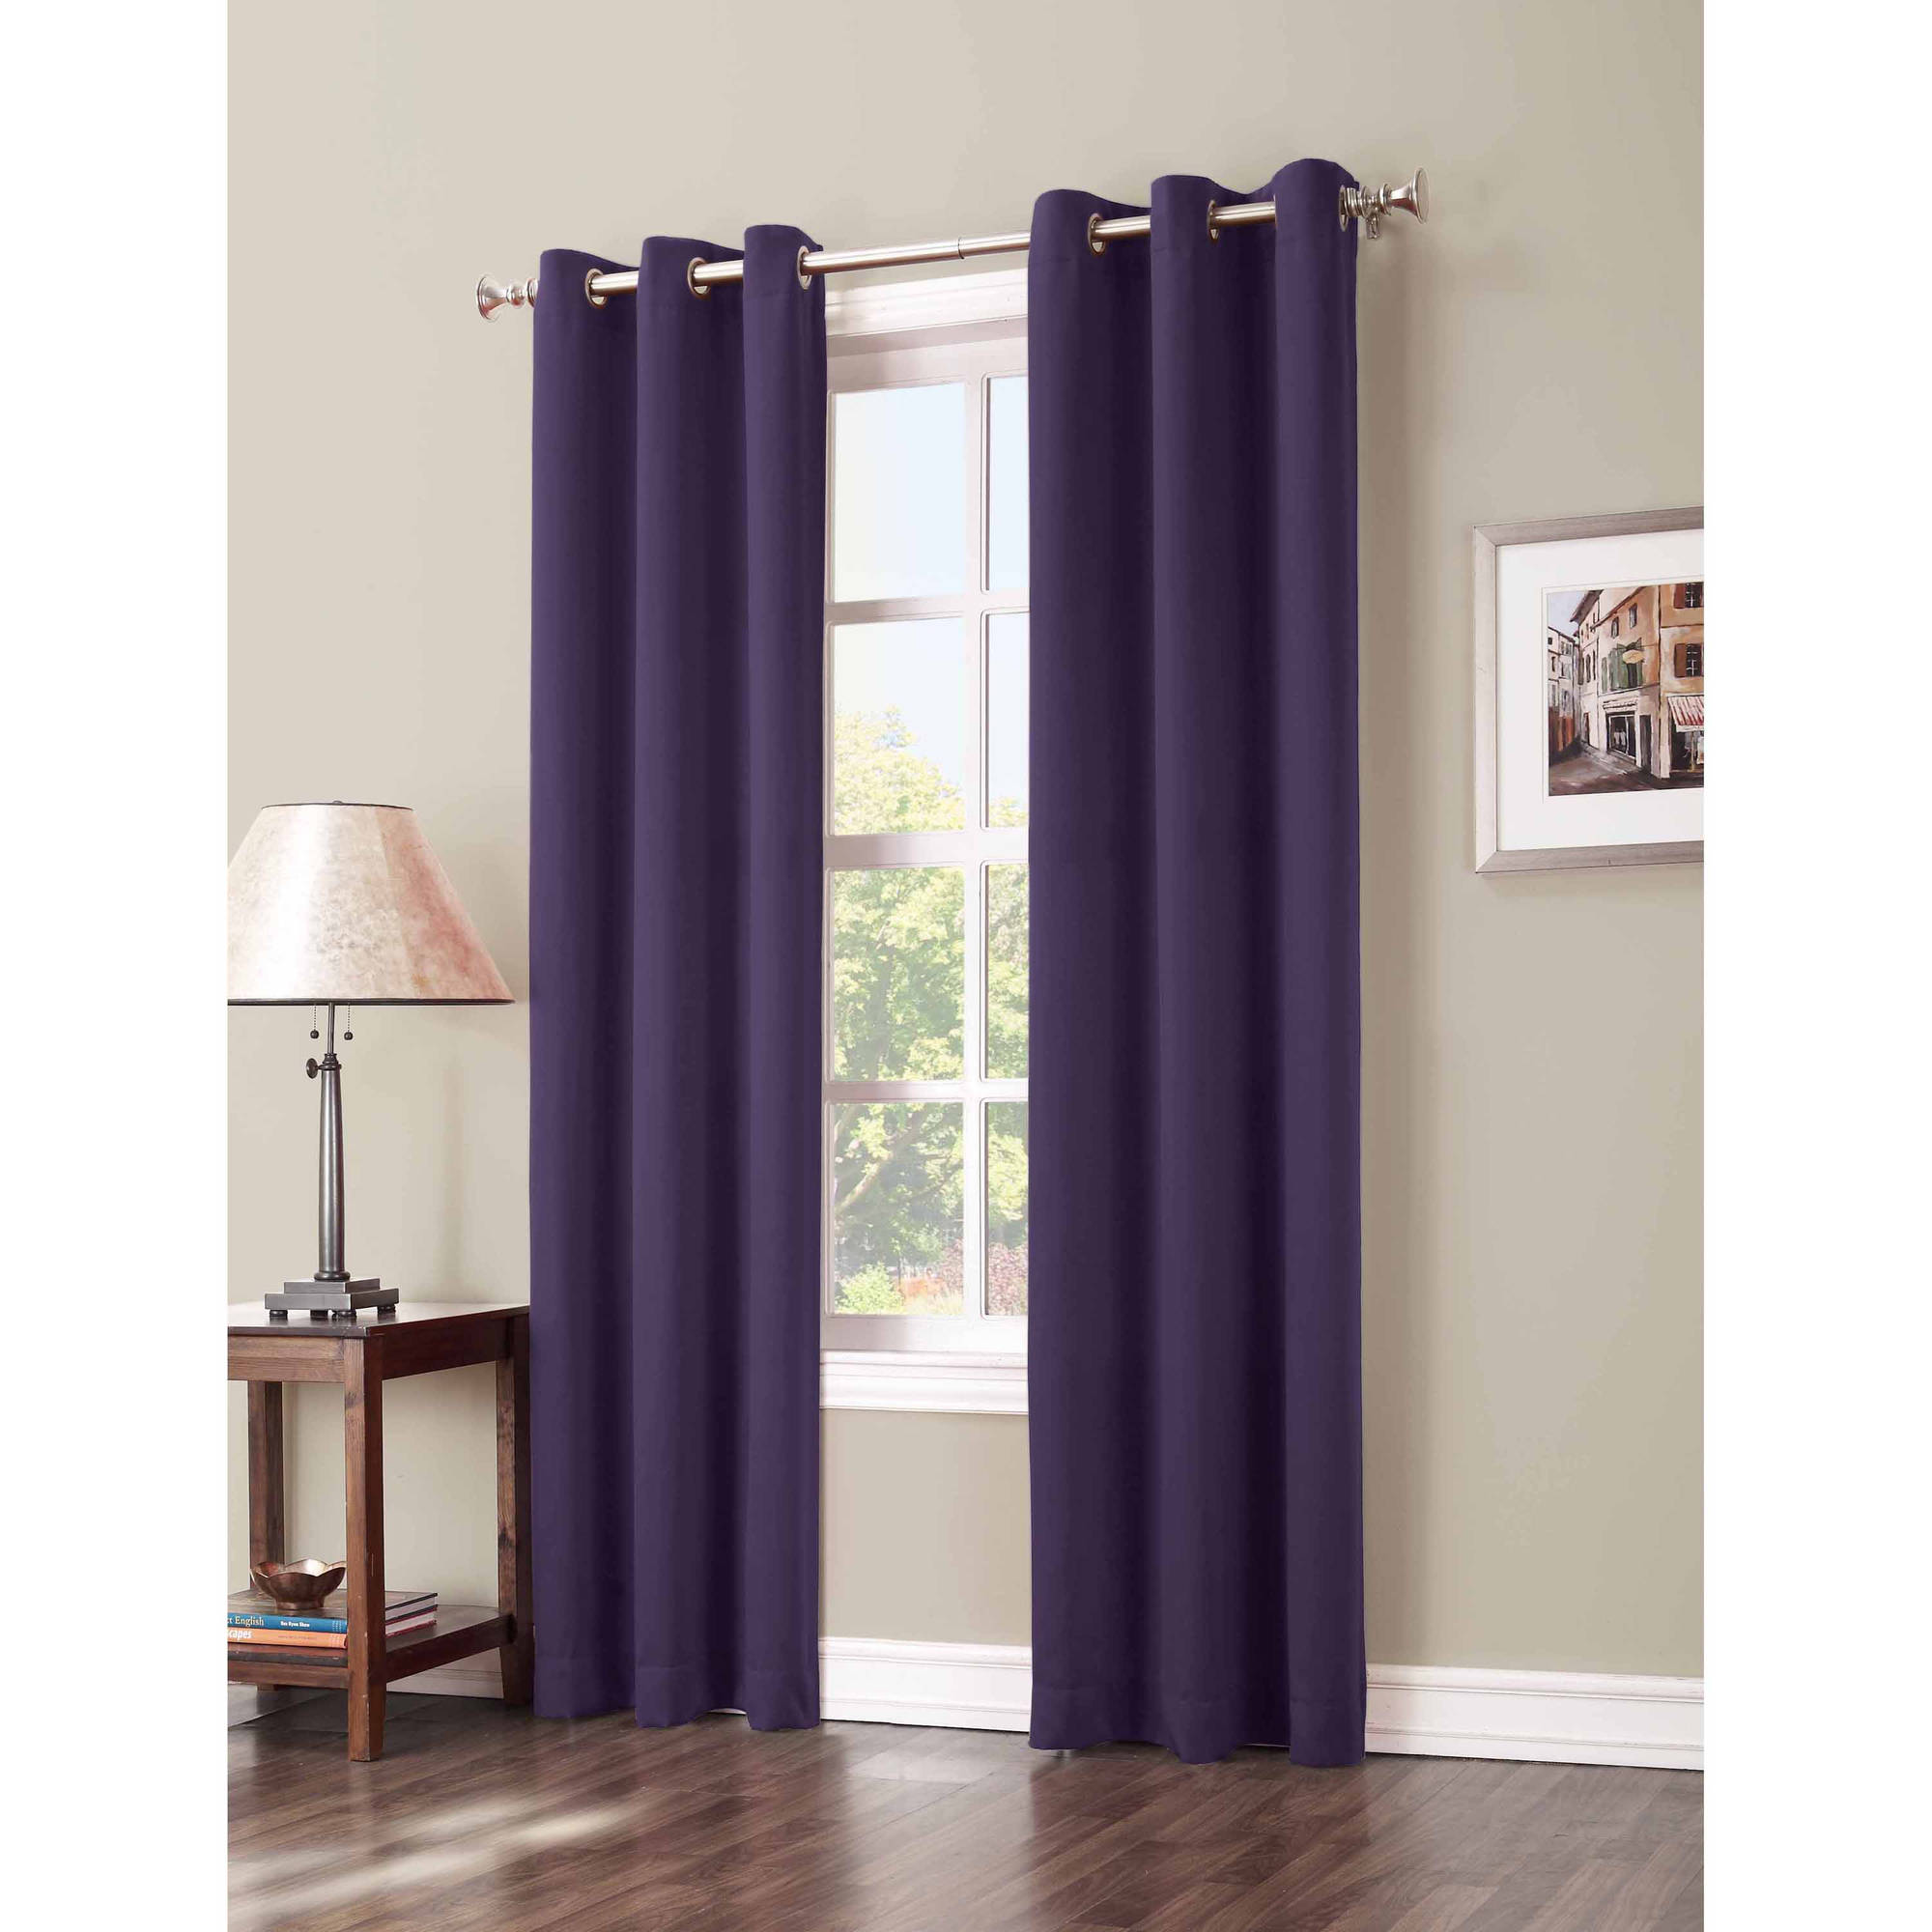 roth oberlin panel panels cotton back shop single light tab navy allen pd filtering curtains curtain in